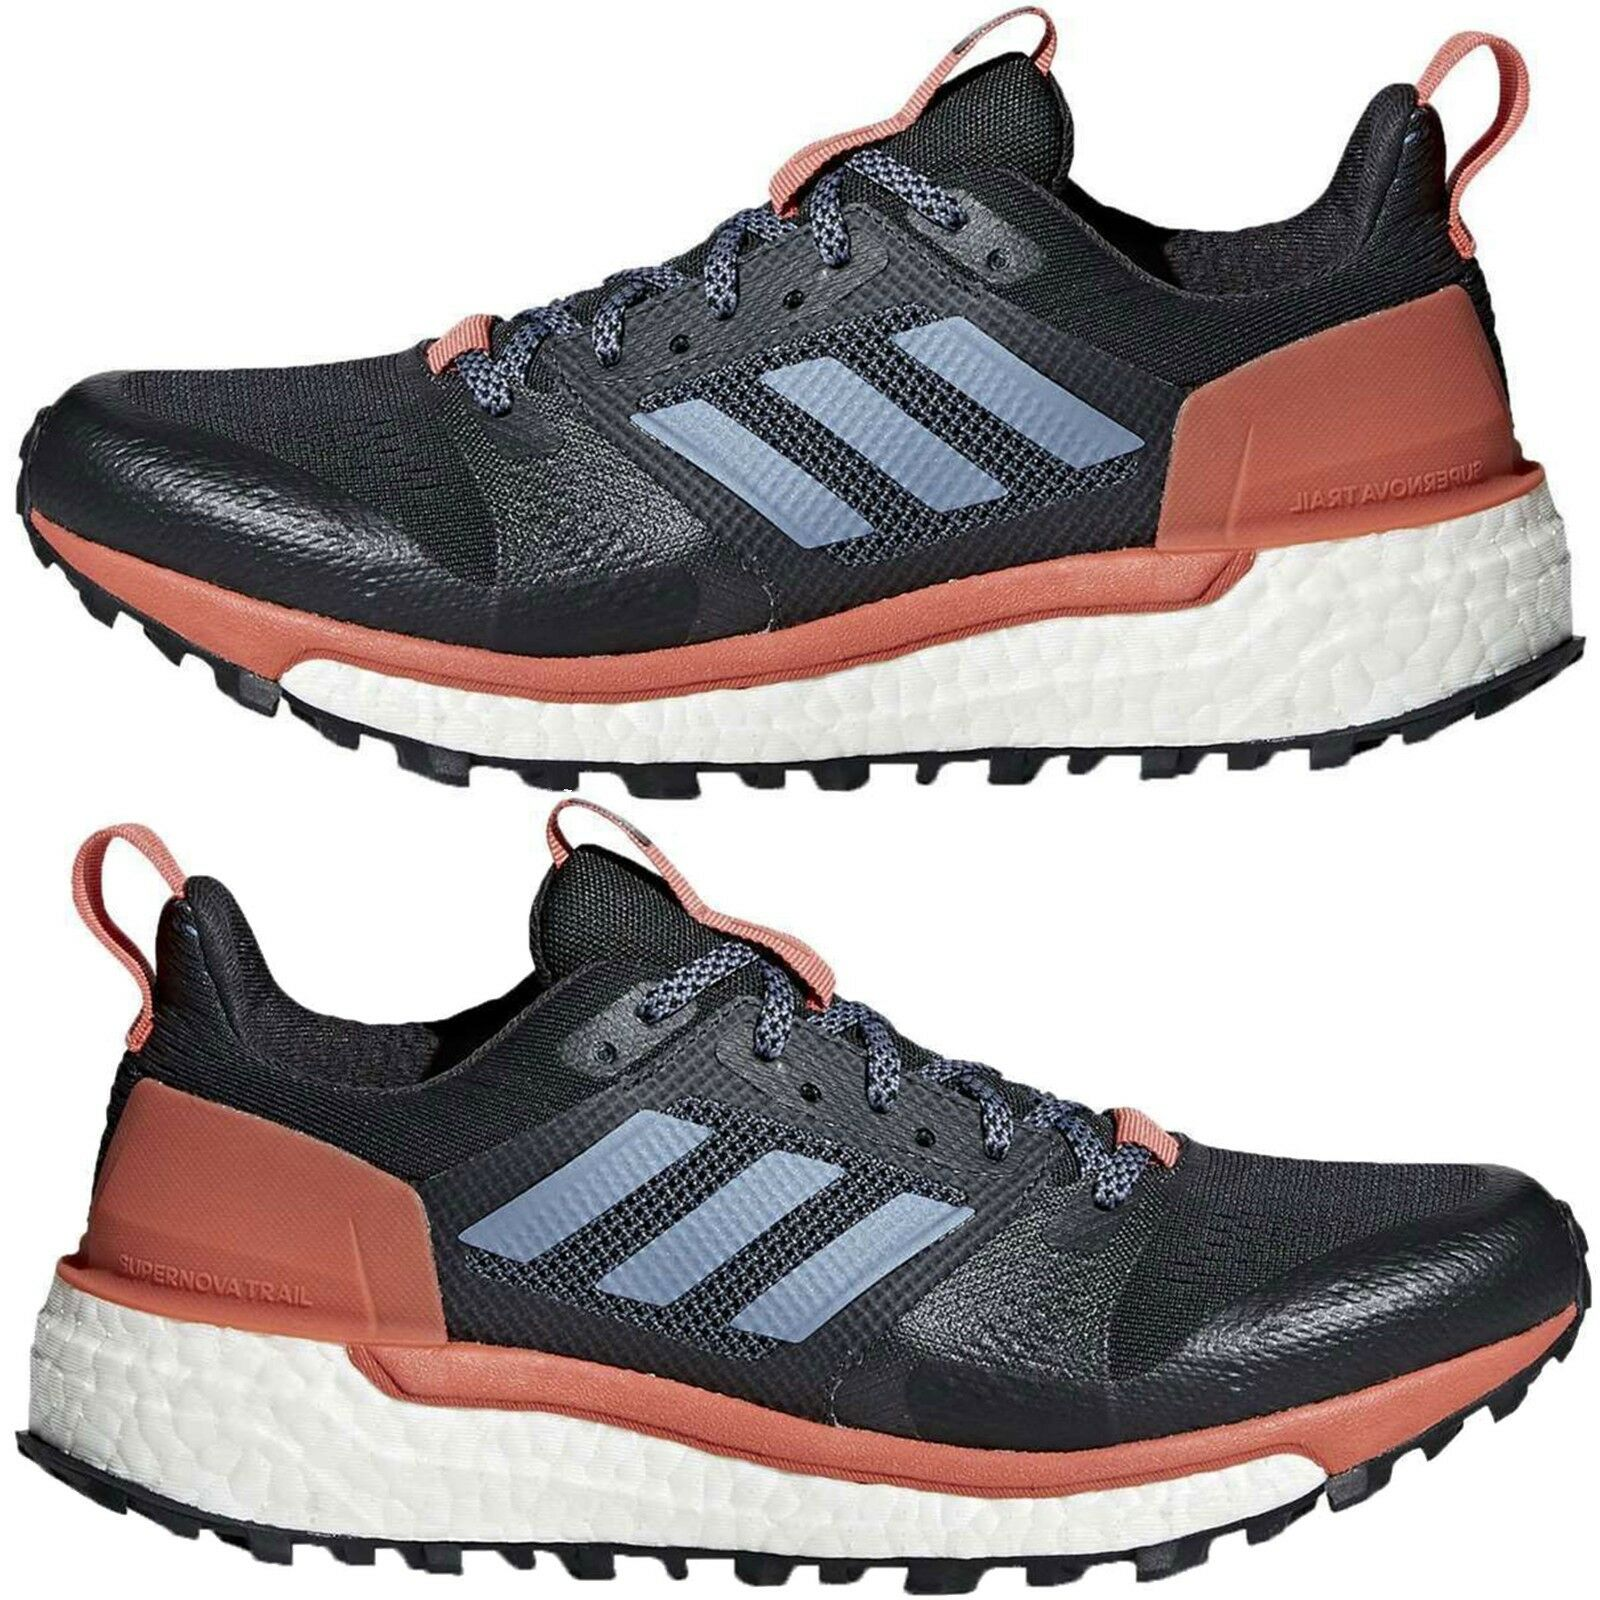 Adidas Femme Athletic Chaussures Supernova Trail Running Lace Up Sneakers Authentic